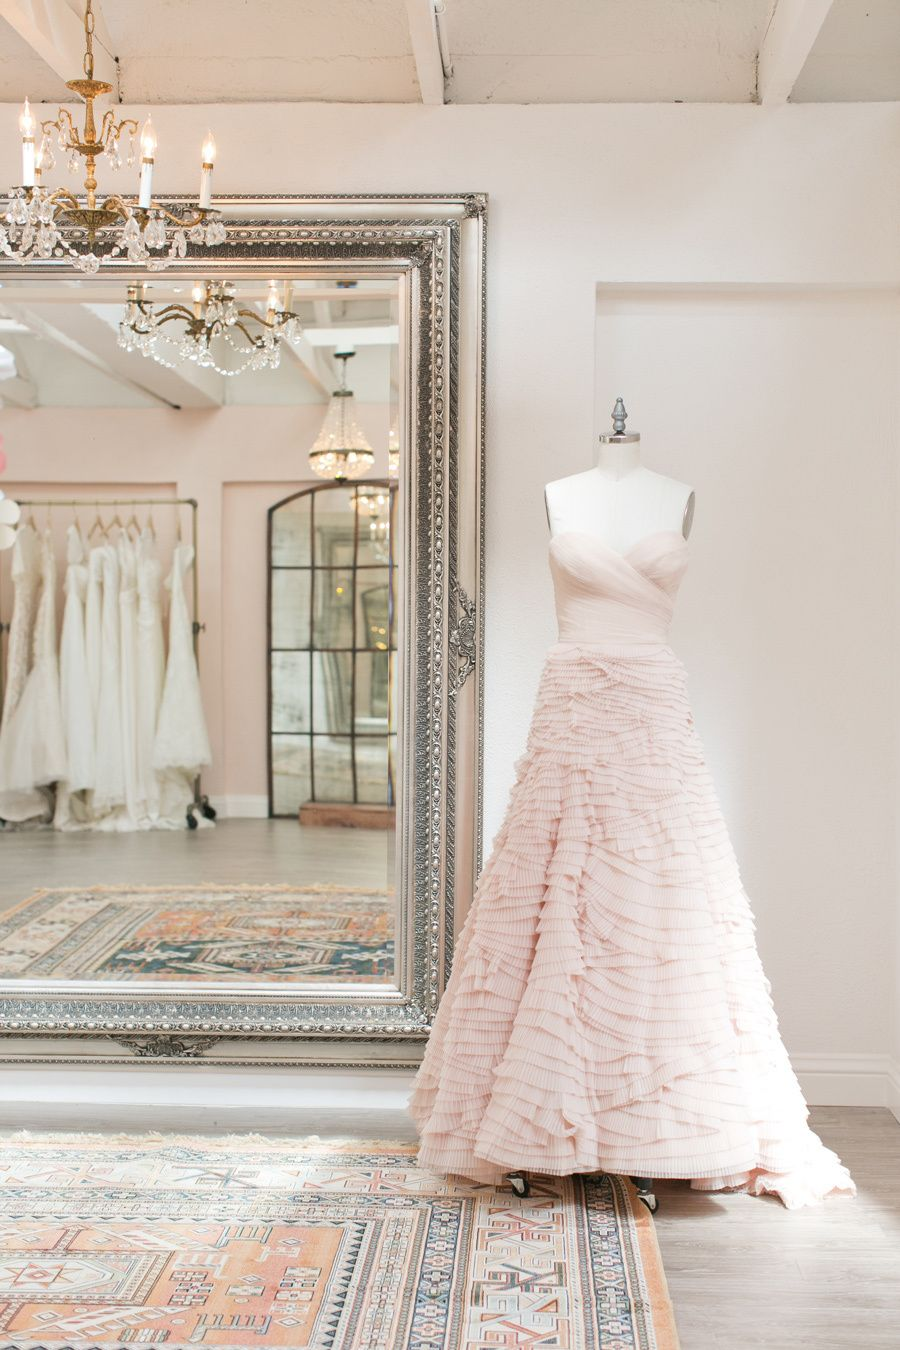 """Wedding Dress Shopping - Tips, Tricks and the dreaded """"WHAT IF?... On #SMP: http://www.StyleMePretty.com/2016/01/17/how-to-find-perfect-wedding-dress/ From Mara Urshel of #SayYesToTheDress 